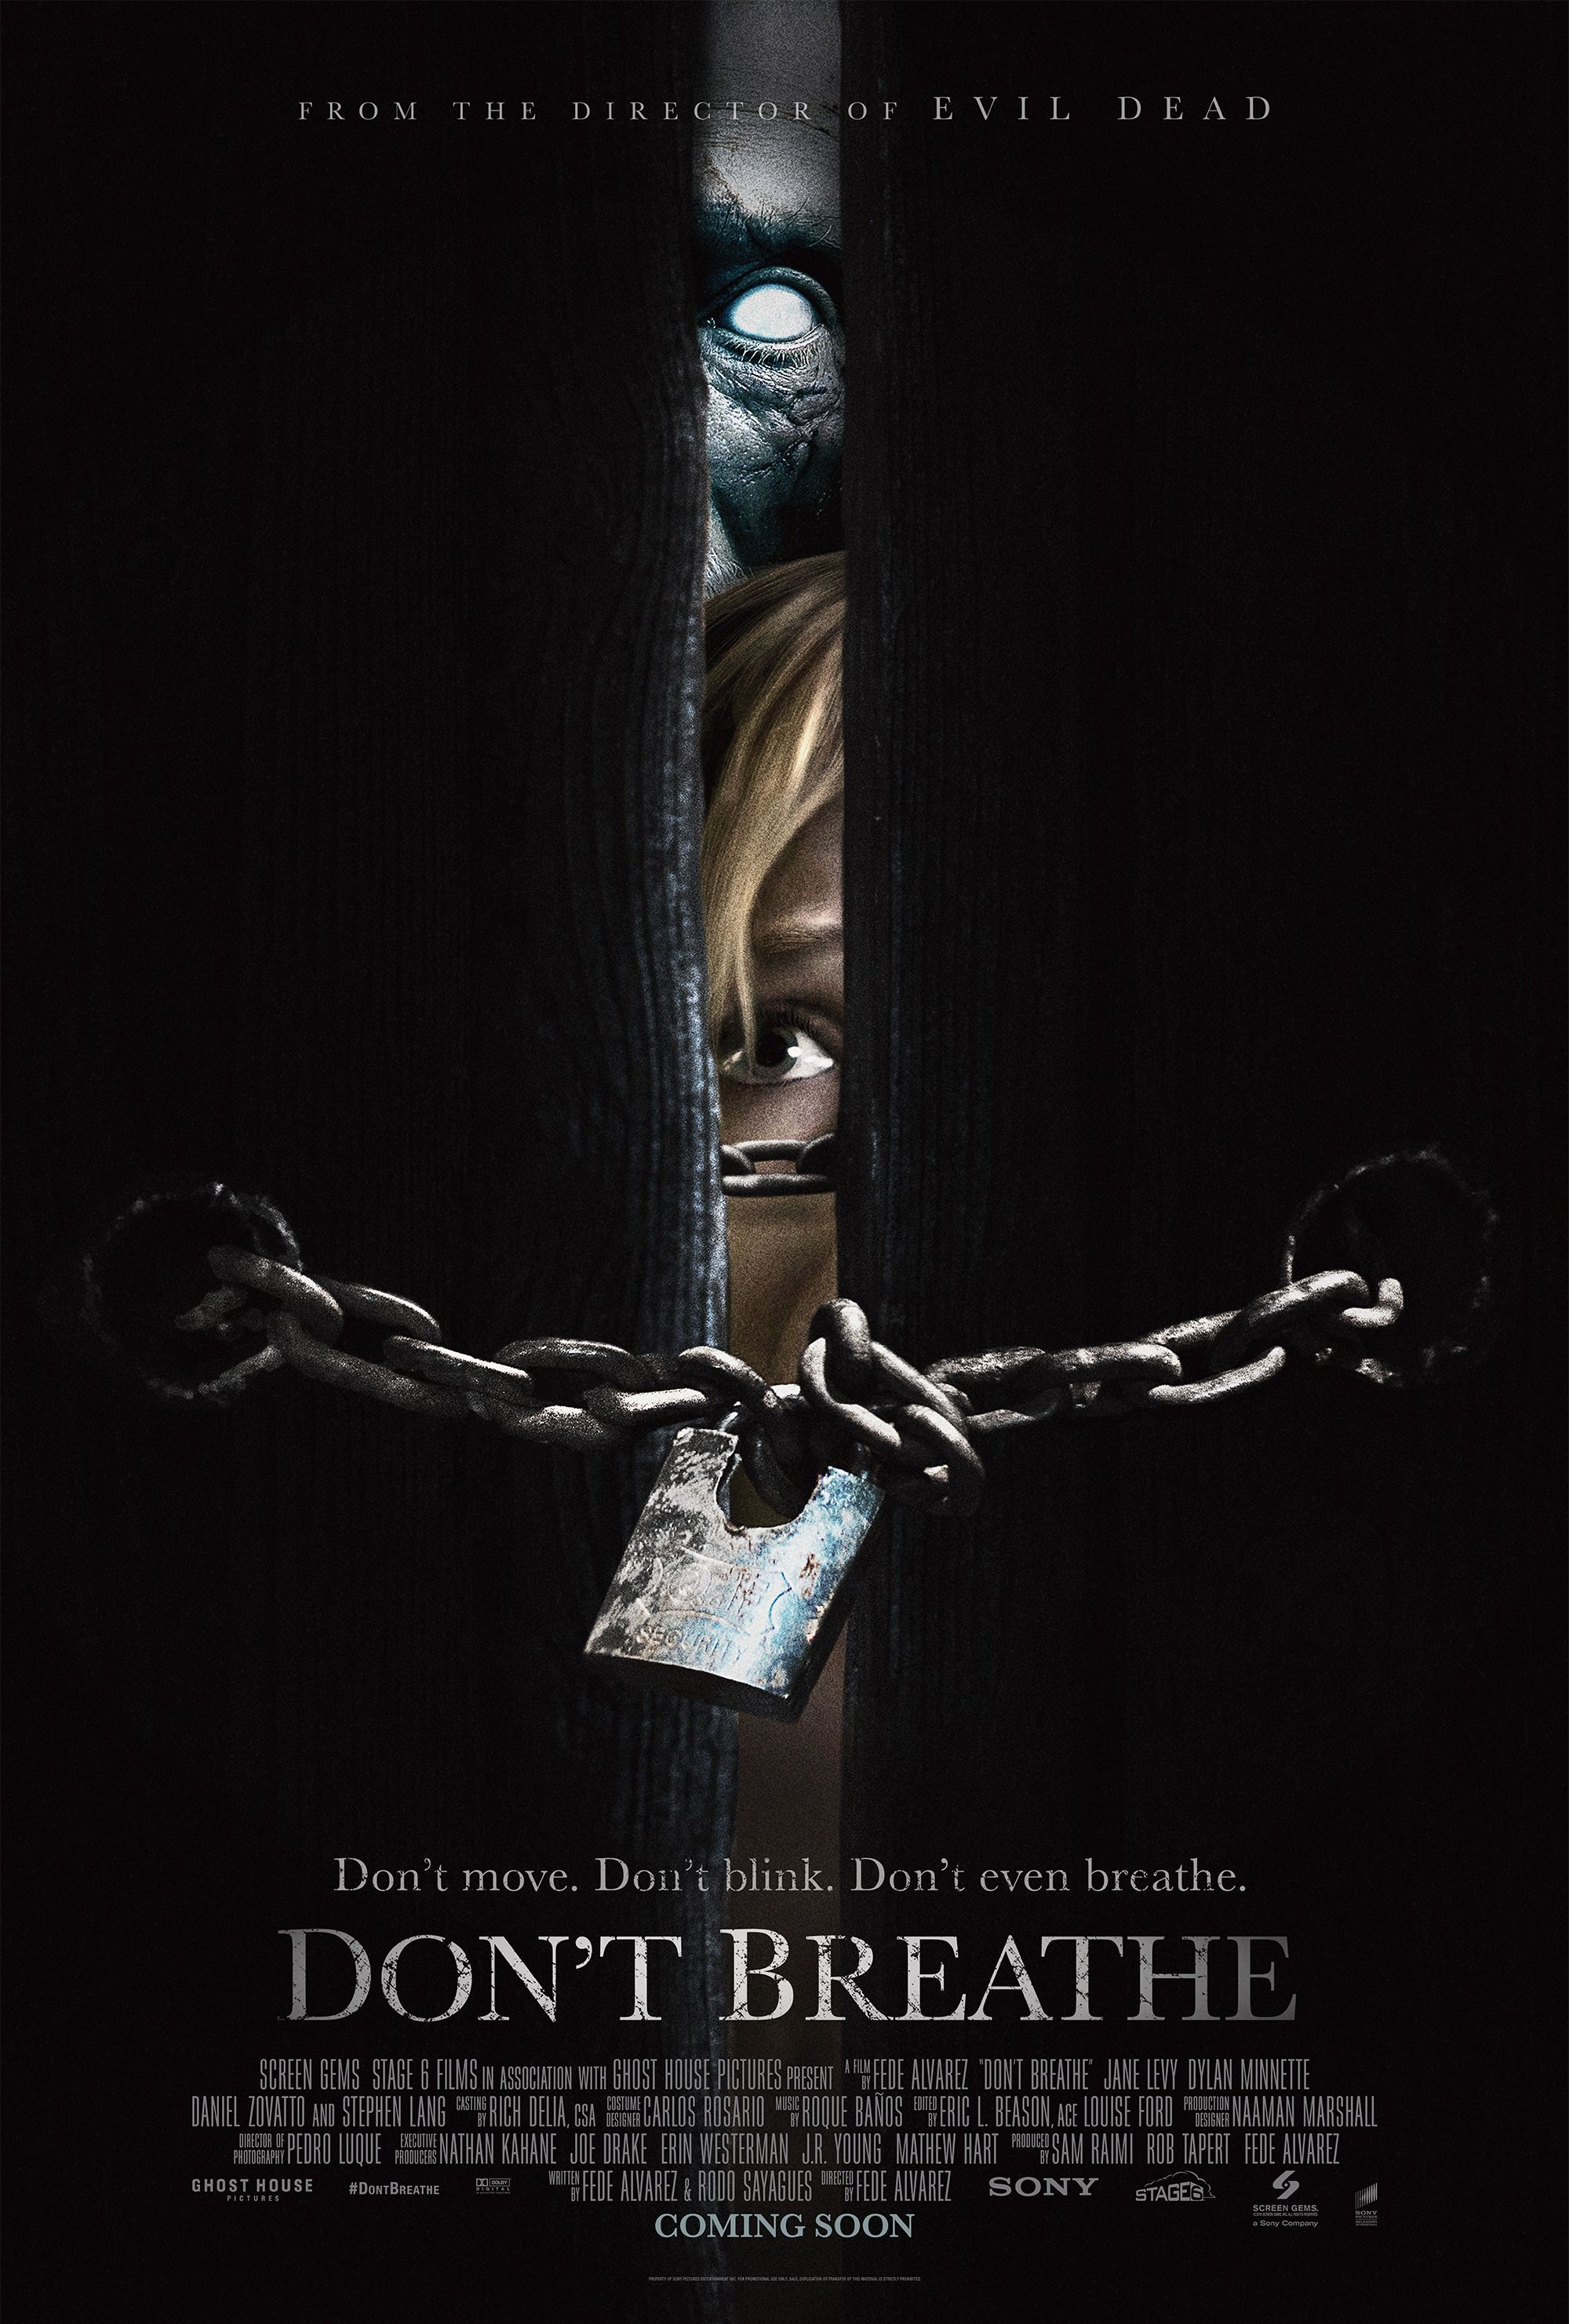 Don't Breathe - Full Movie Watch Online, Download and